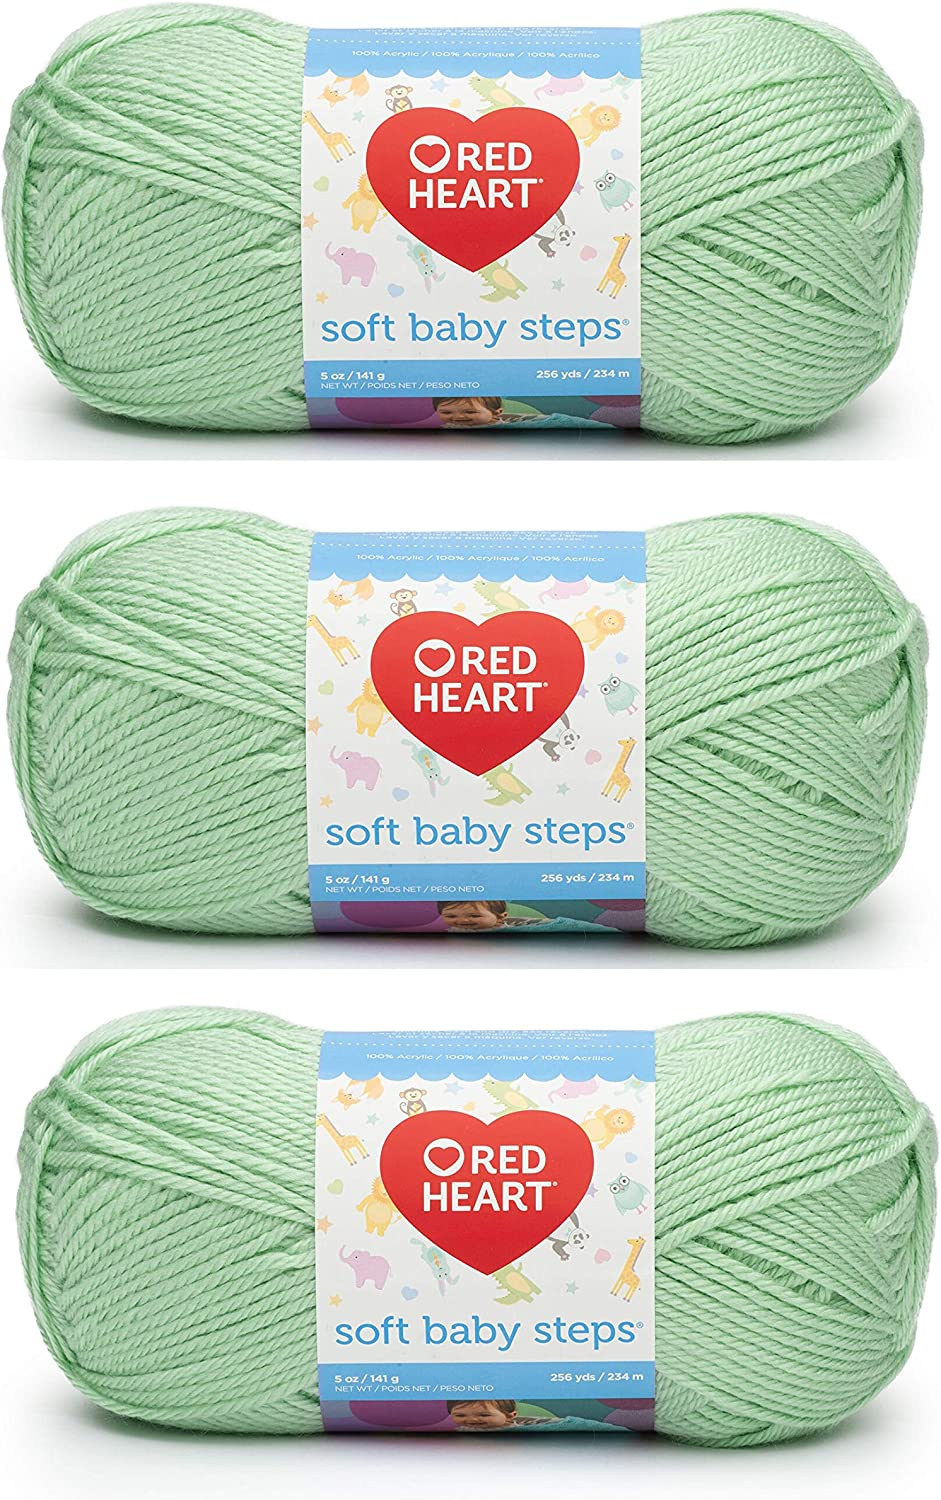 You choose the color Red Heart Soft Baby Steps Yarn